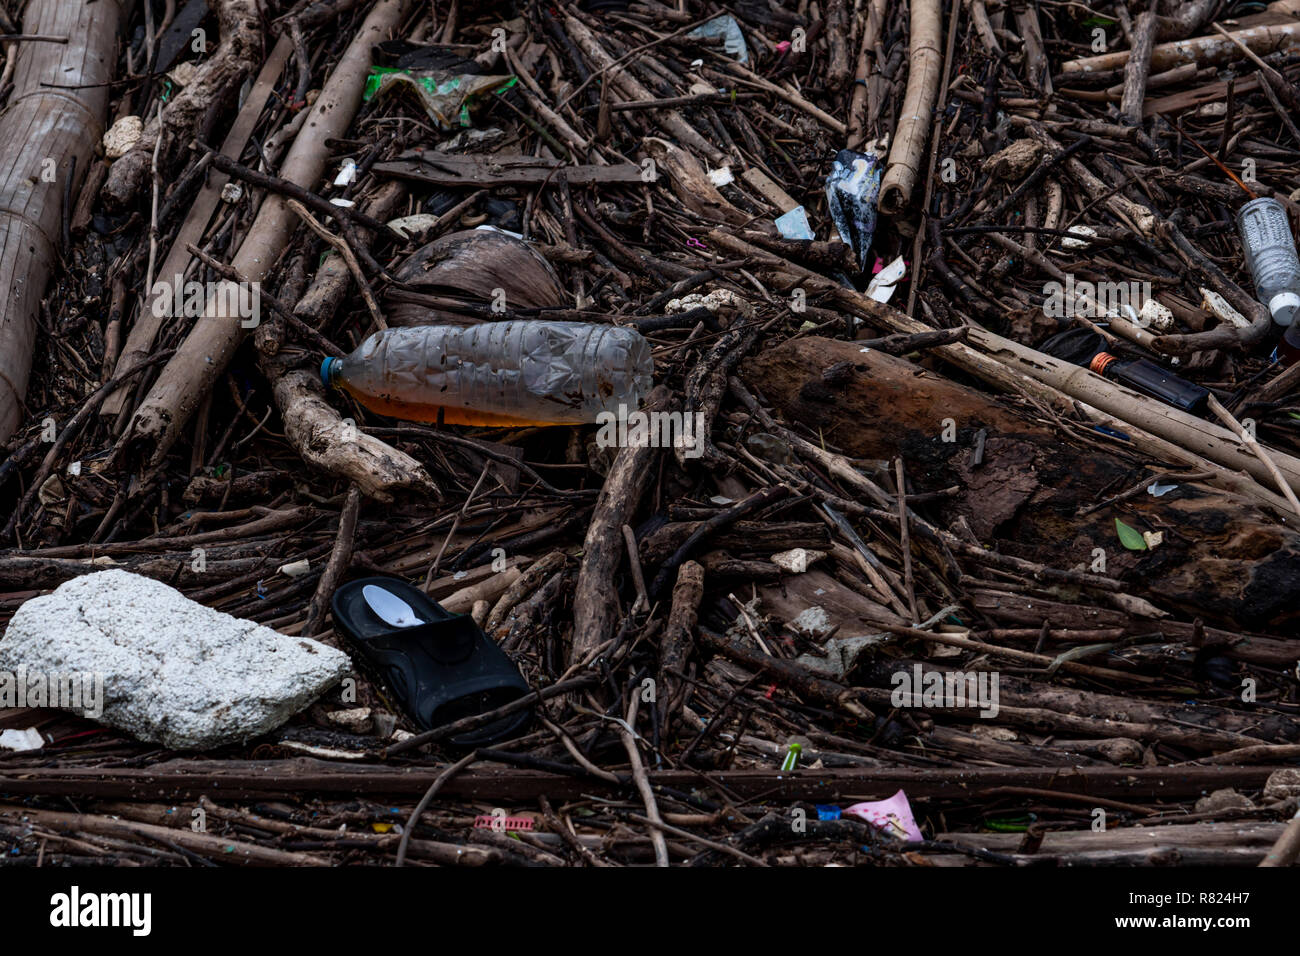 Pile of debris and waste after flood. Waste problem in the environment. Problem of plastic from households. Waste management behavior concept. Househo - Stock Image